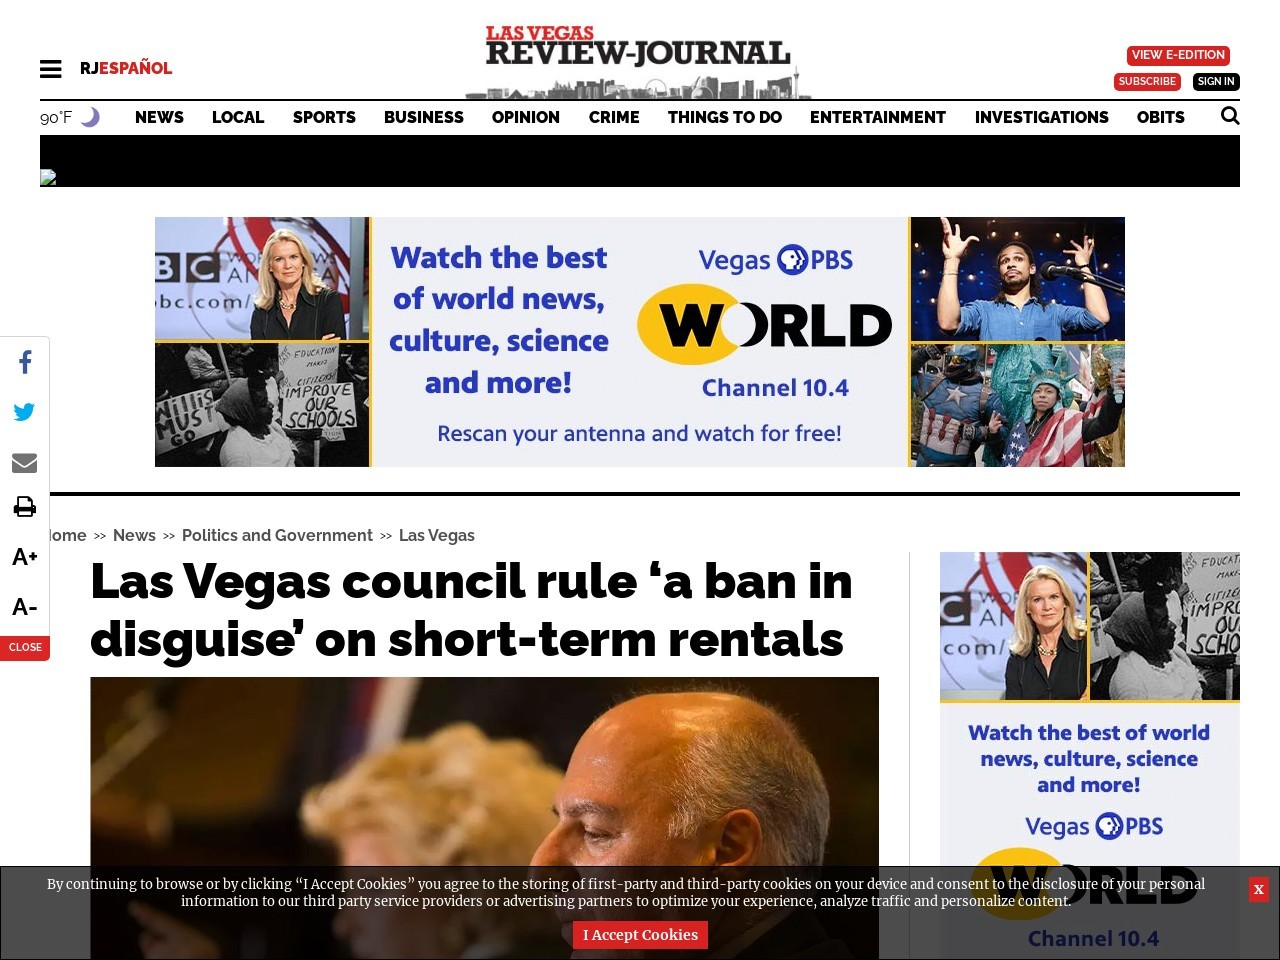 Las Vegas council new rule called 'a ban in disguise' on Airbnb